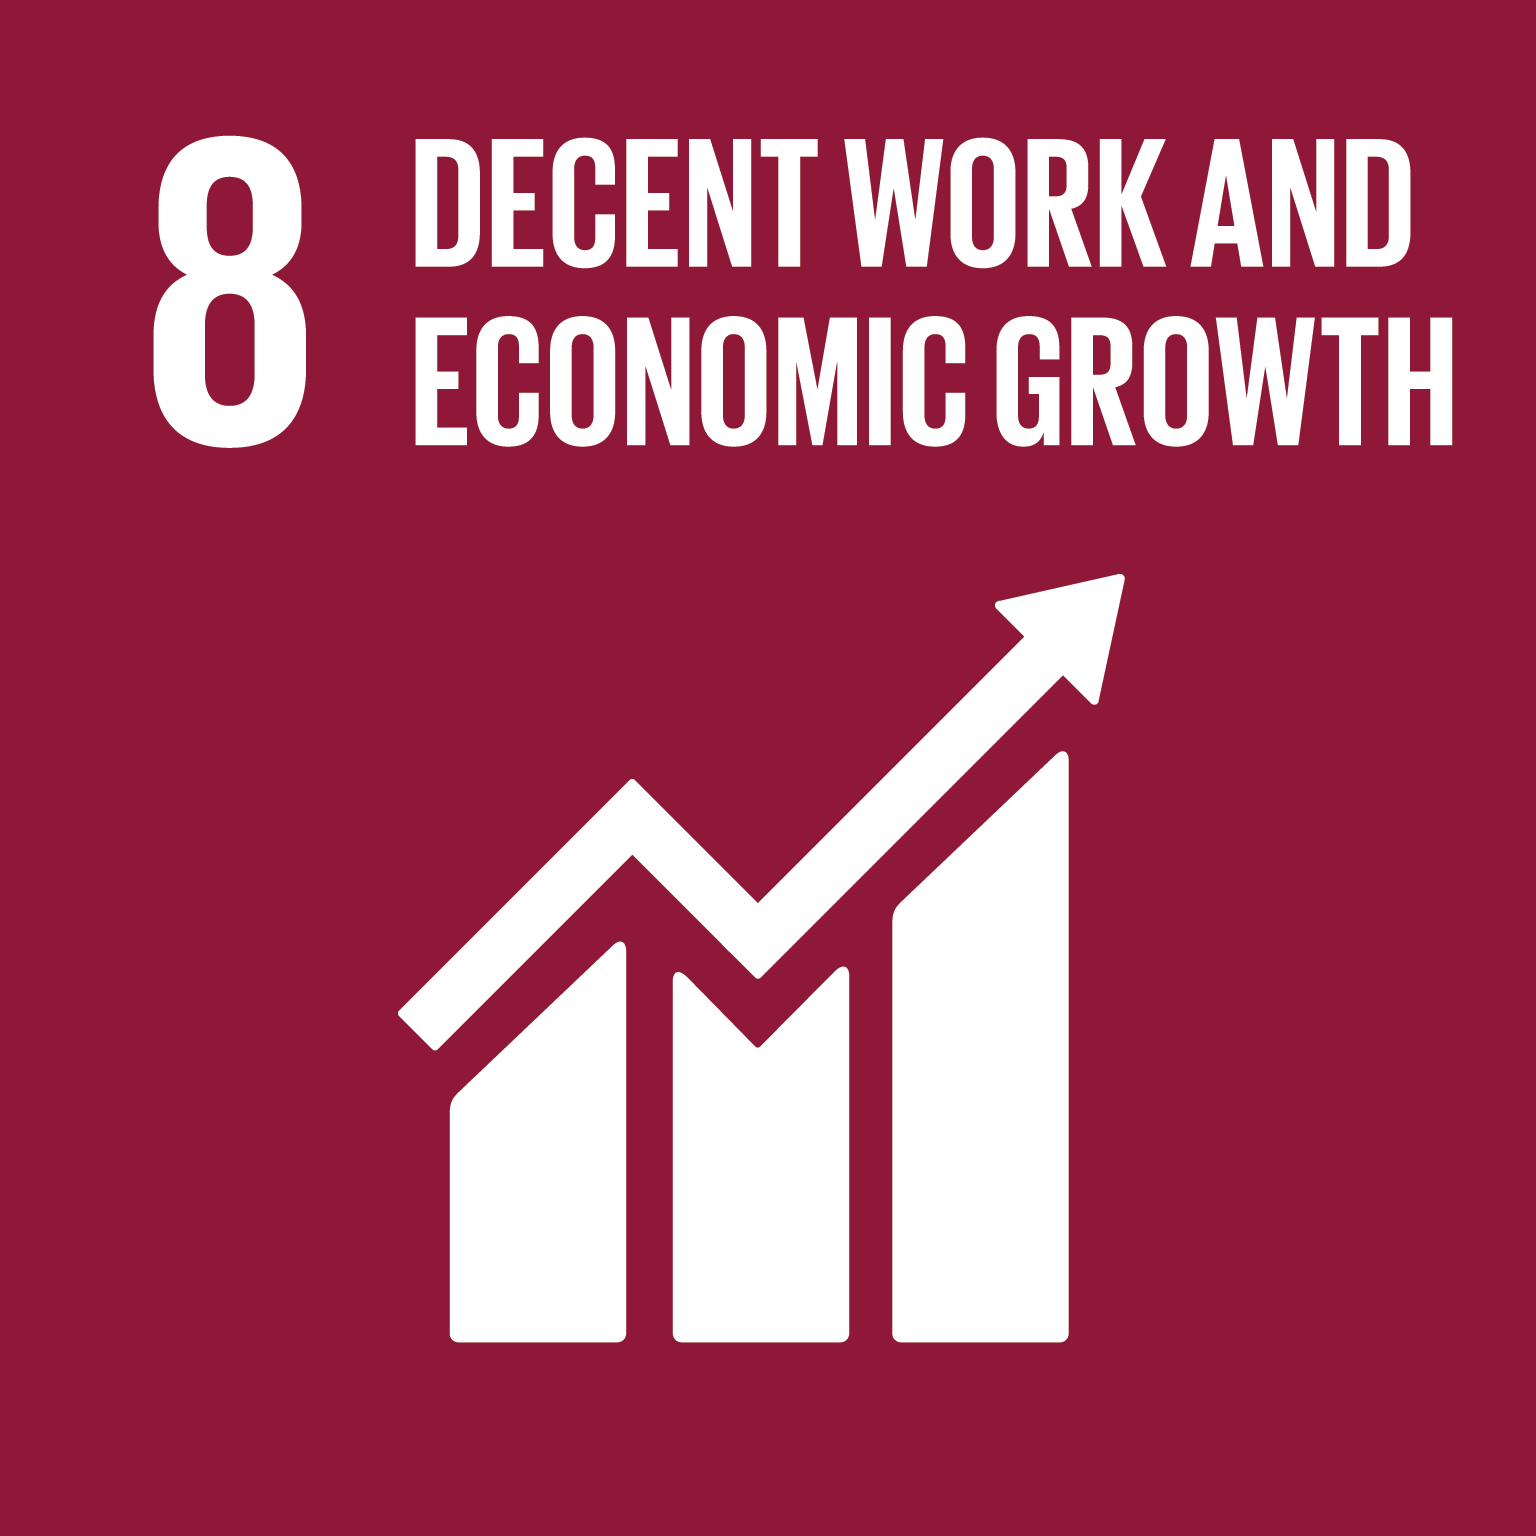 08 Decent work and economic growth